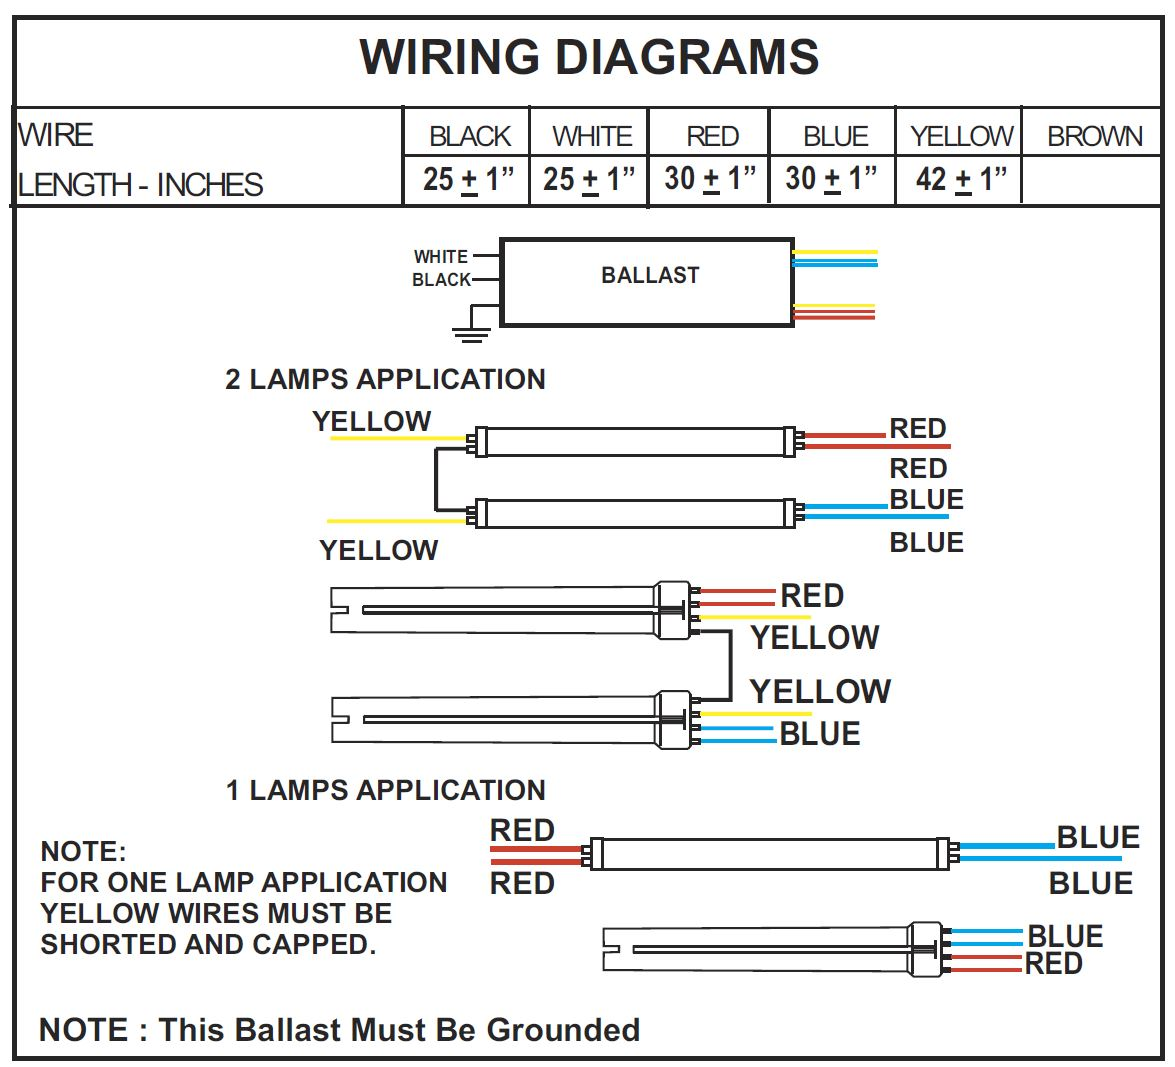 hight resolution of t5 ballast wiring diagram wiring diagram fascinating 4 lamp t5 ballast wiring diagram t5 ballast wiring diagram